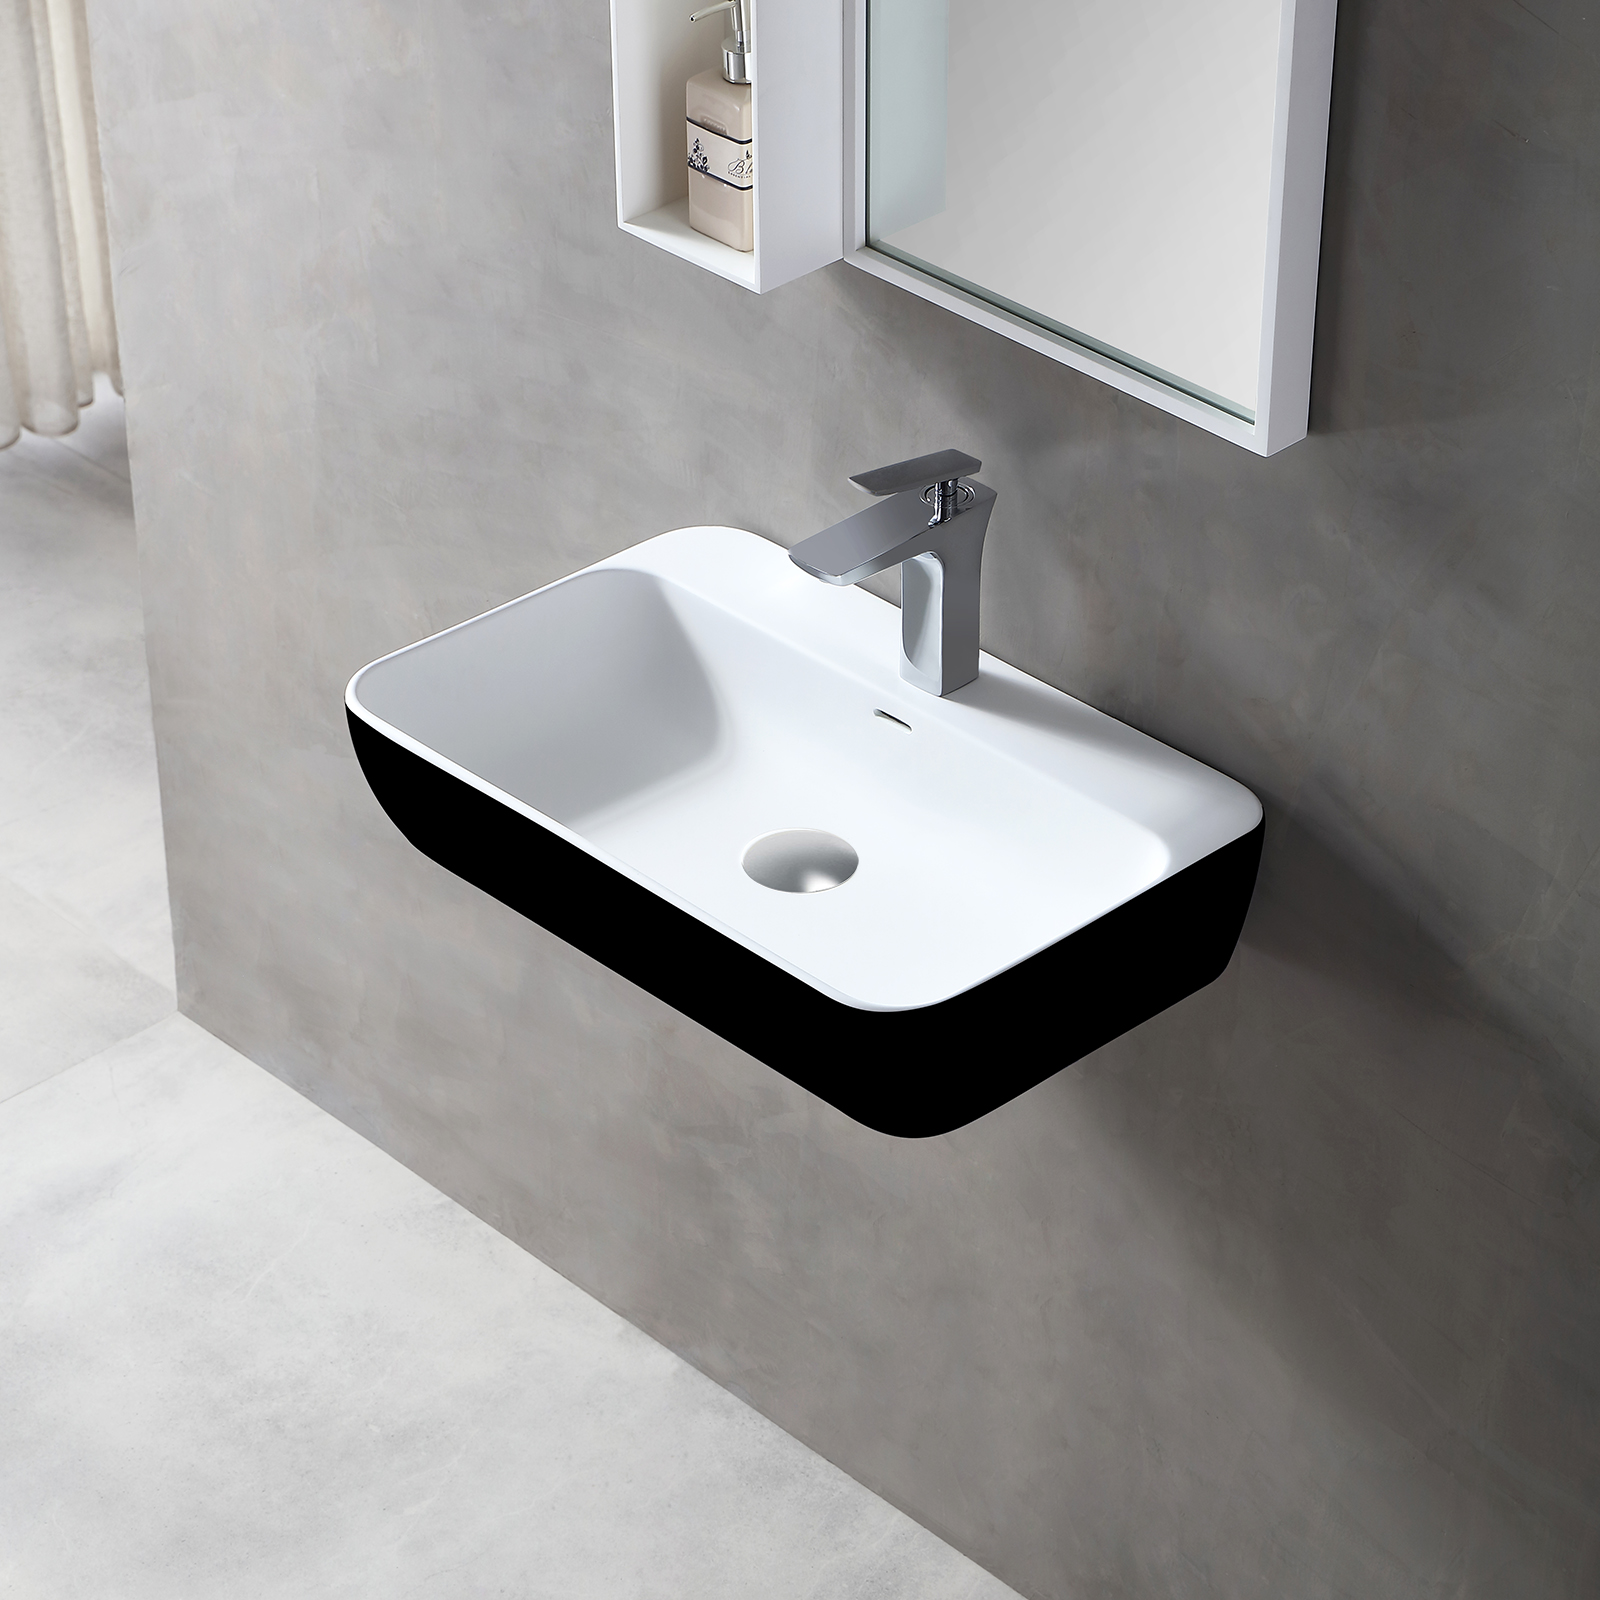 Wall-mounted or countertop washbasin TWG201 - of solid surface (Solid Stone) – matt black/White – 60 x 40 x 14 cm